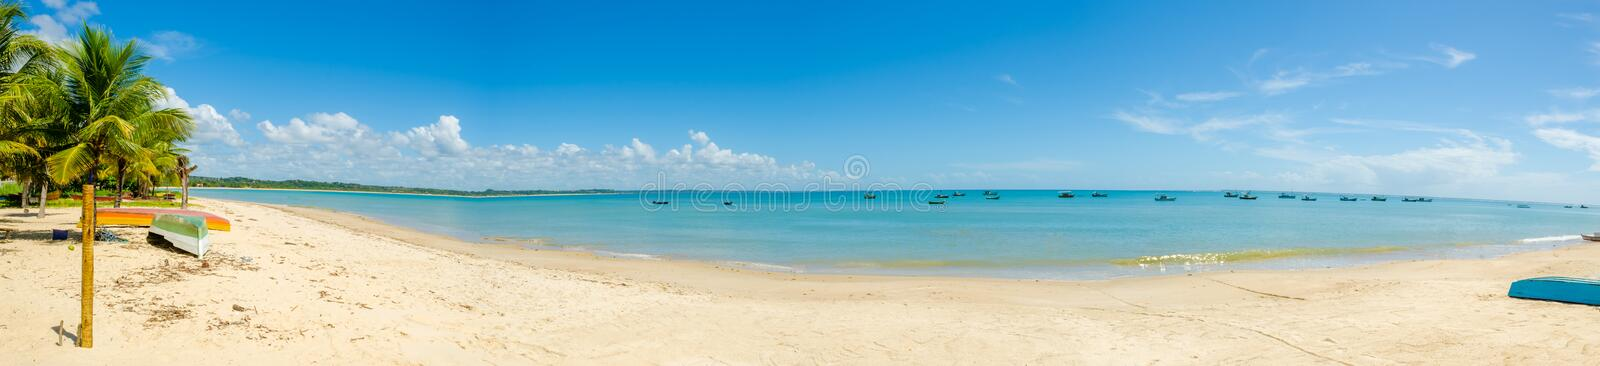 Beautiful panorama of red crown beach in Porto Seguro in Brazil in Bahia, deserted, with some fishing boats, a coconut tree royalty free stock photo